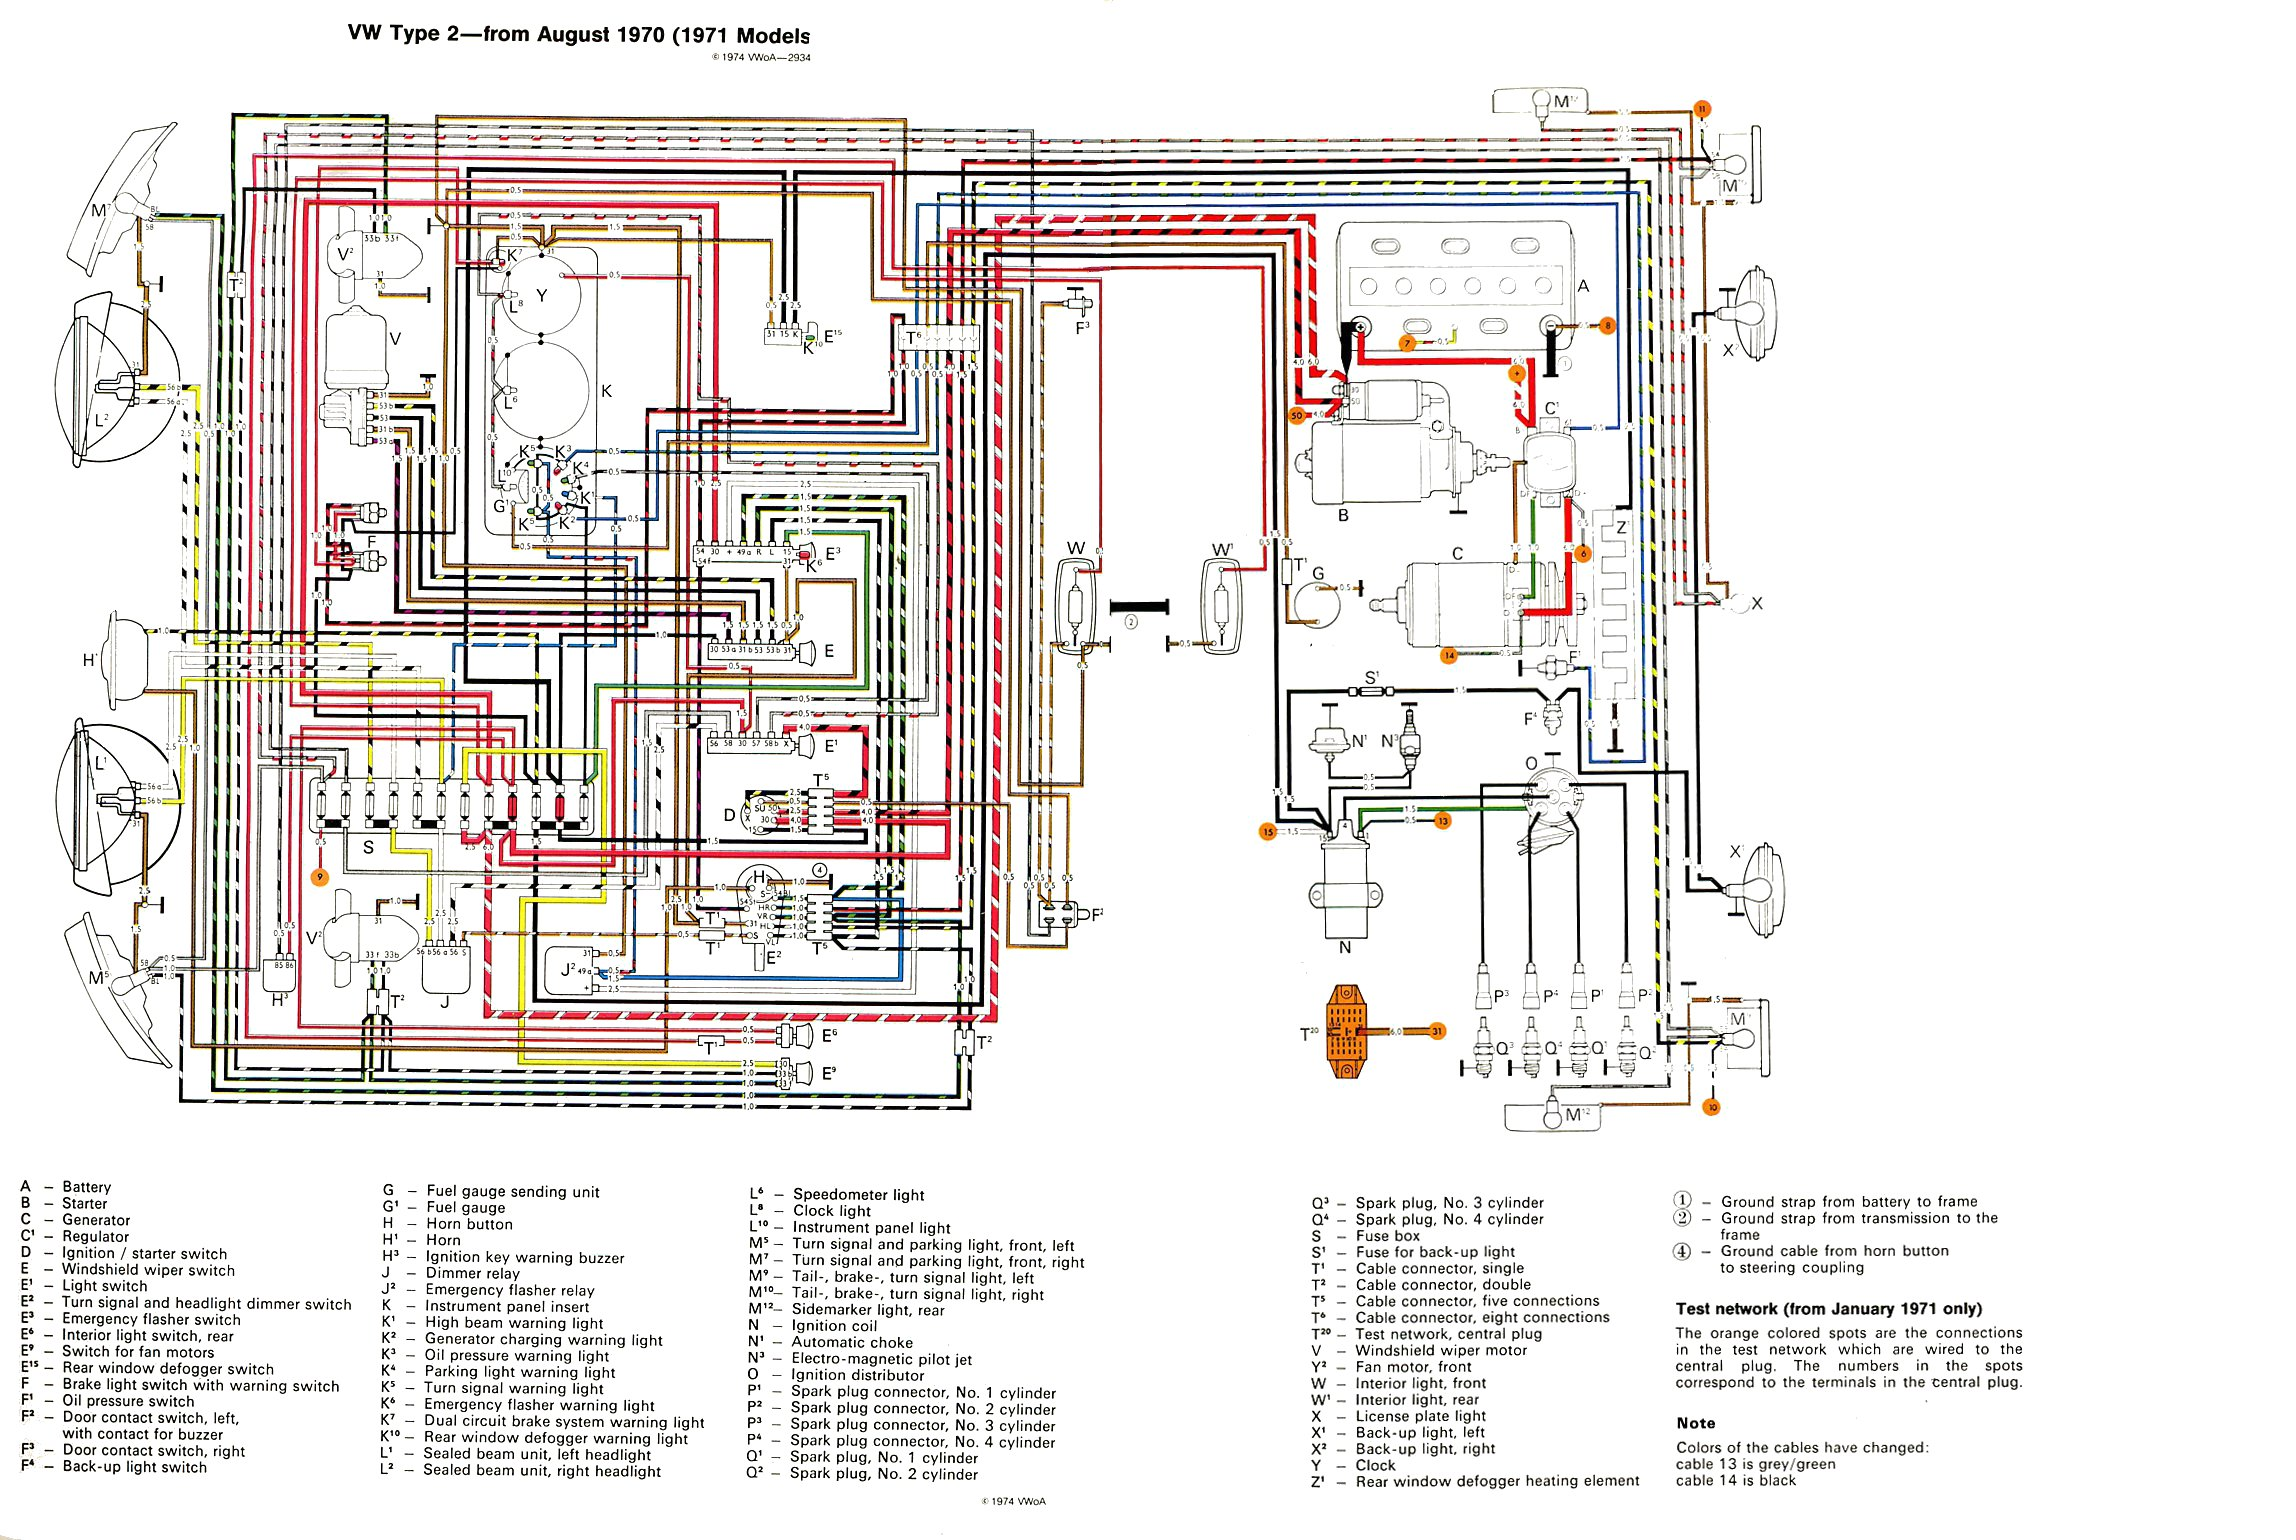 baybus_71 thesamba com type 2 wiring diagrams fuse box wiring diagram at n-0.co